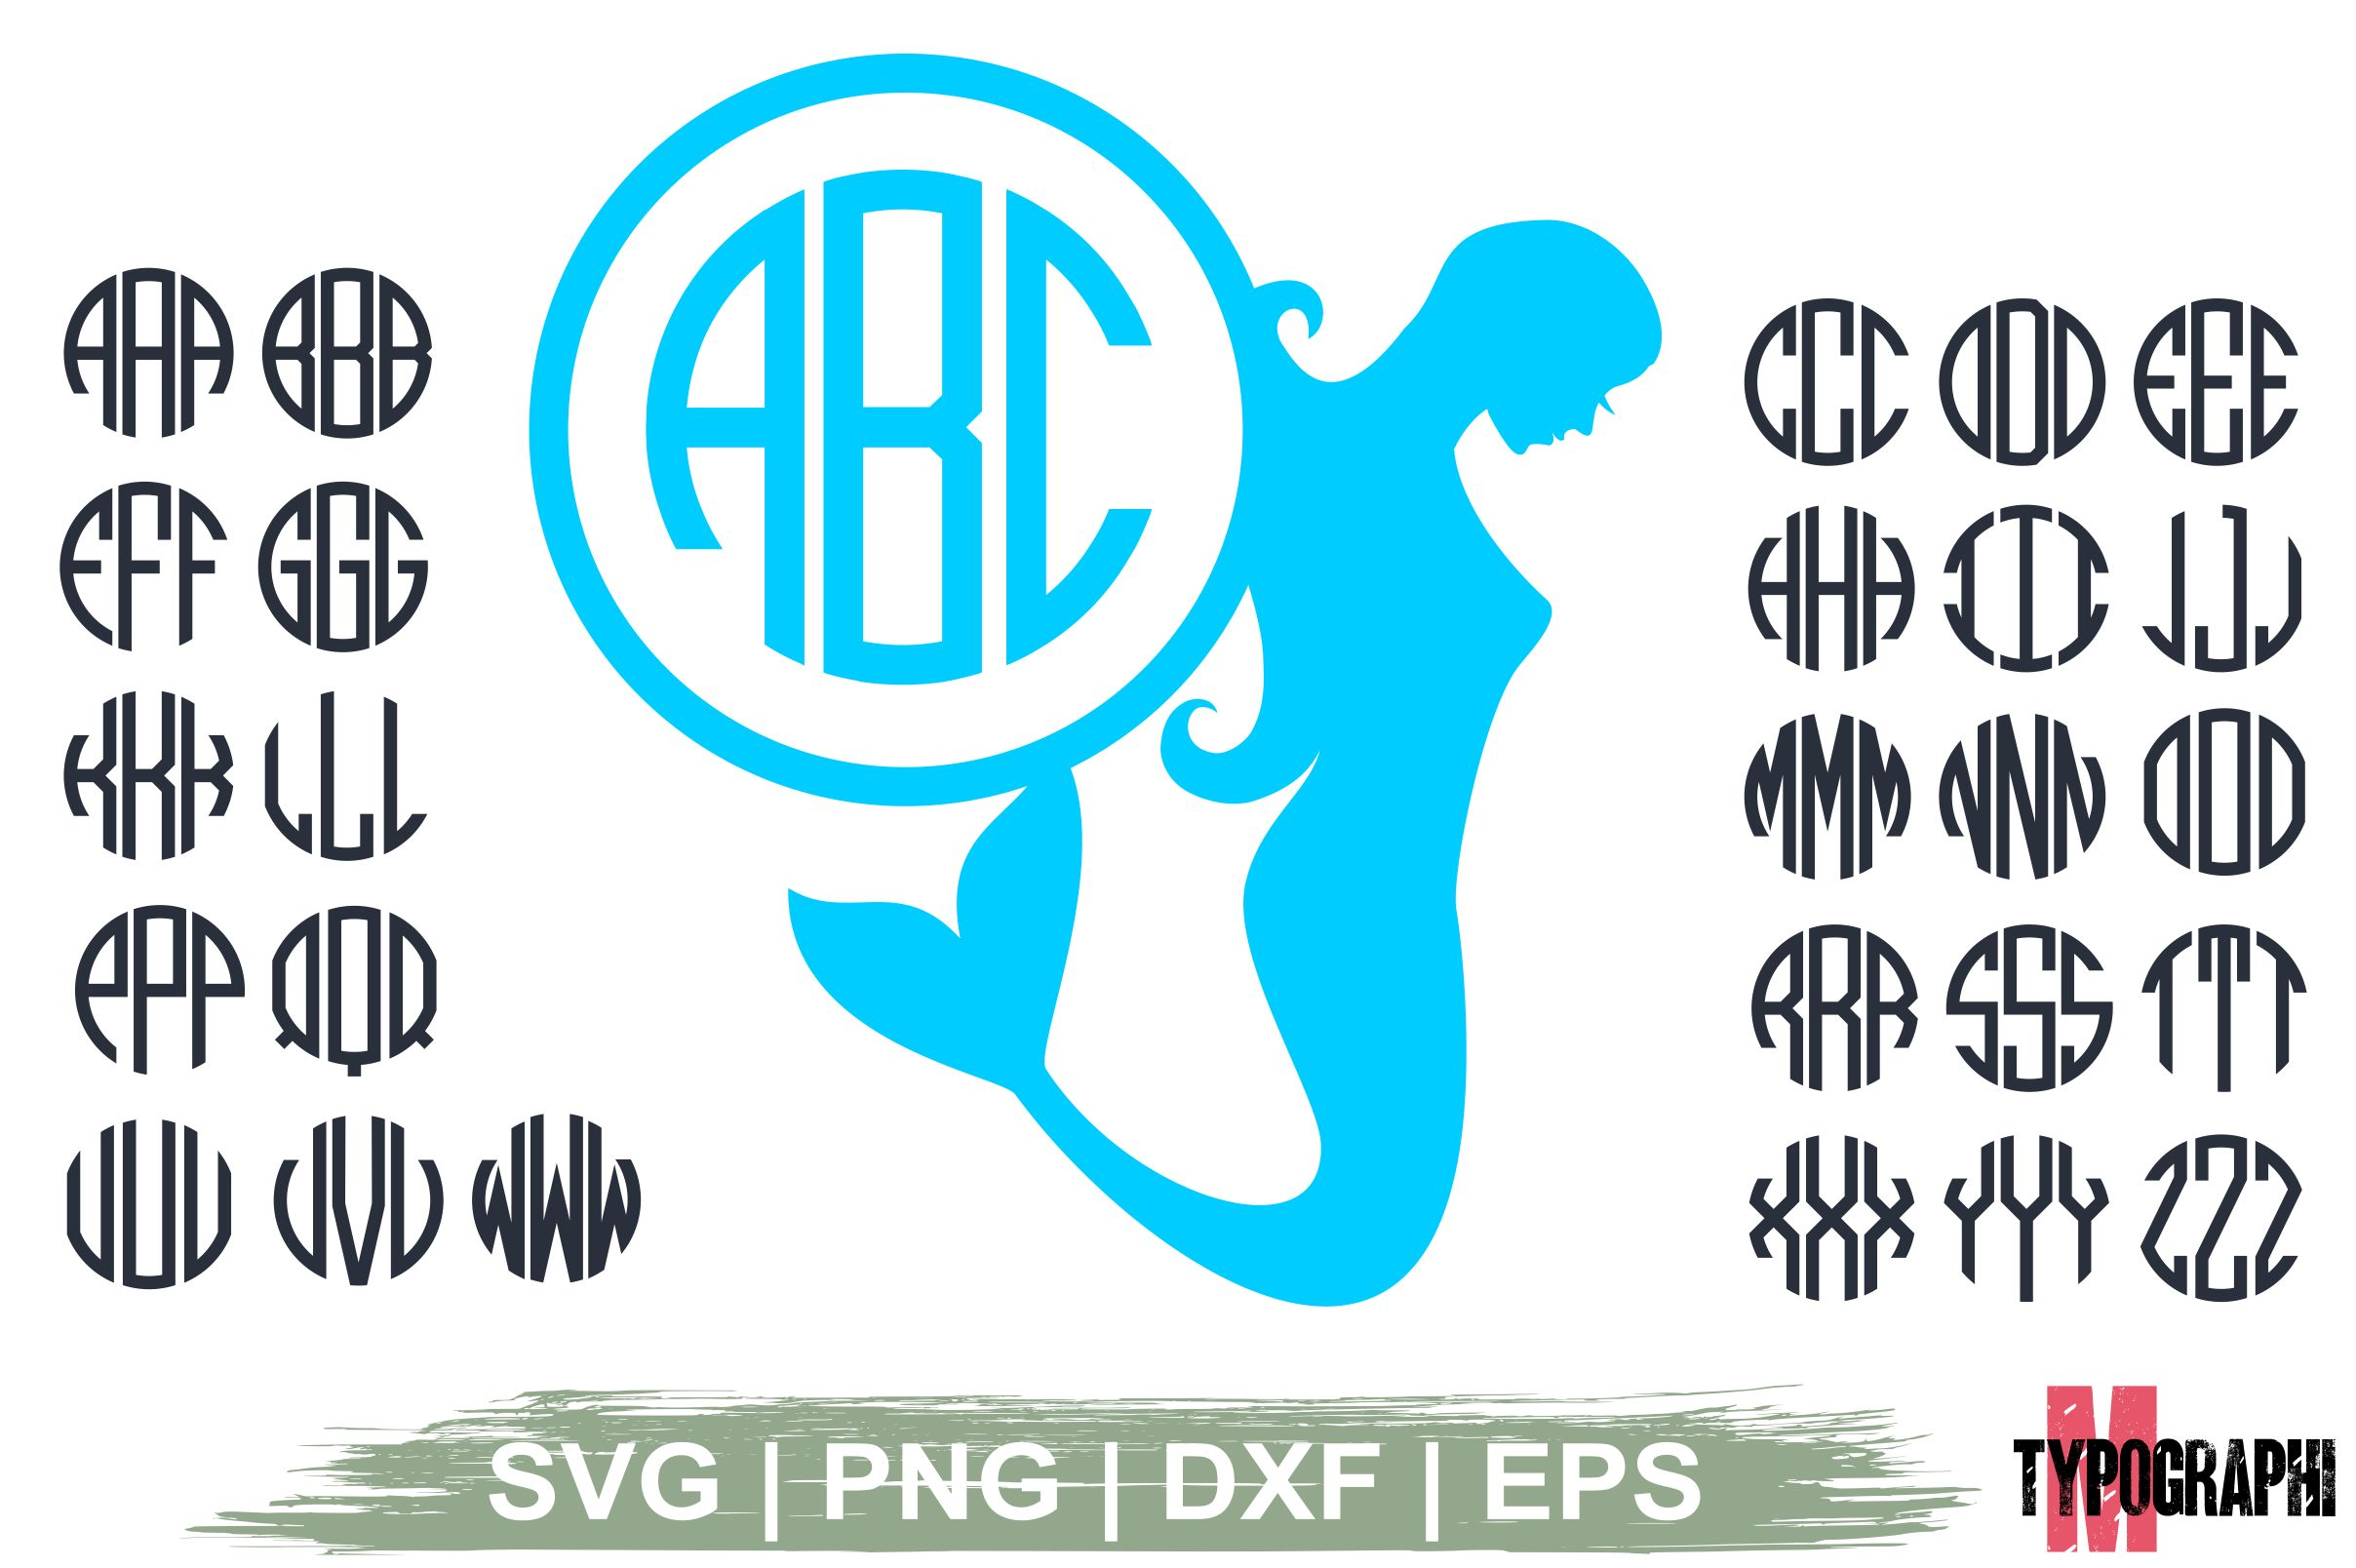 Download Free Mermaid Silhouette Monogram Letters Graphic By Typography for Cricut Explore, Silhouette and other cutting machines.